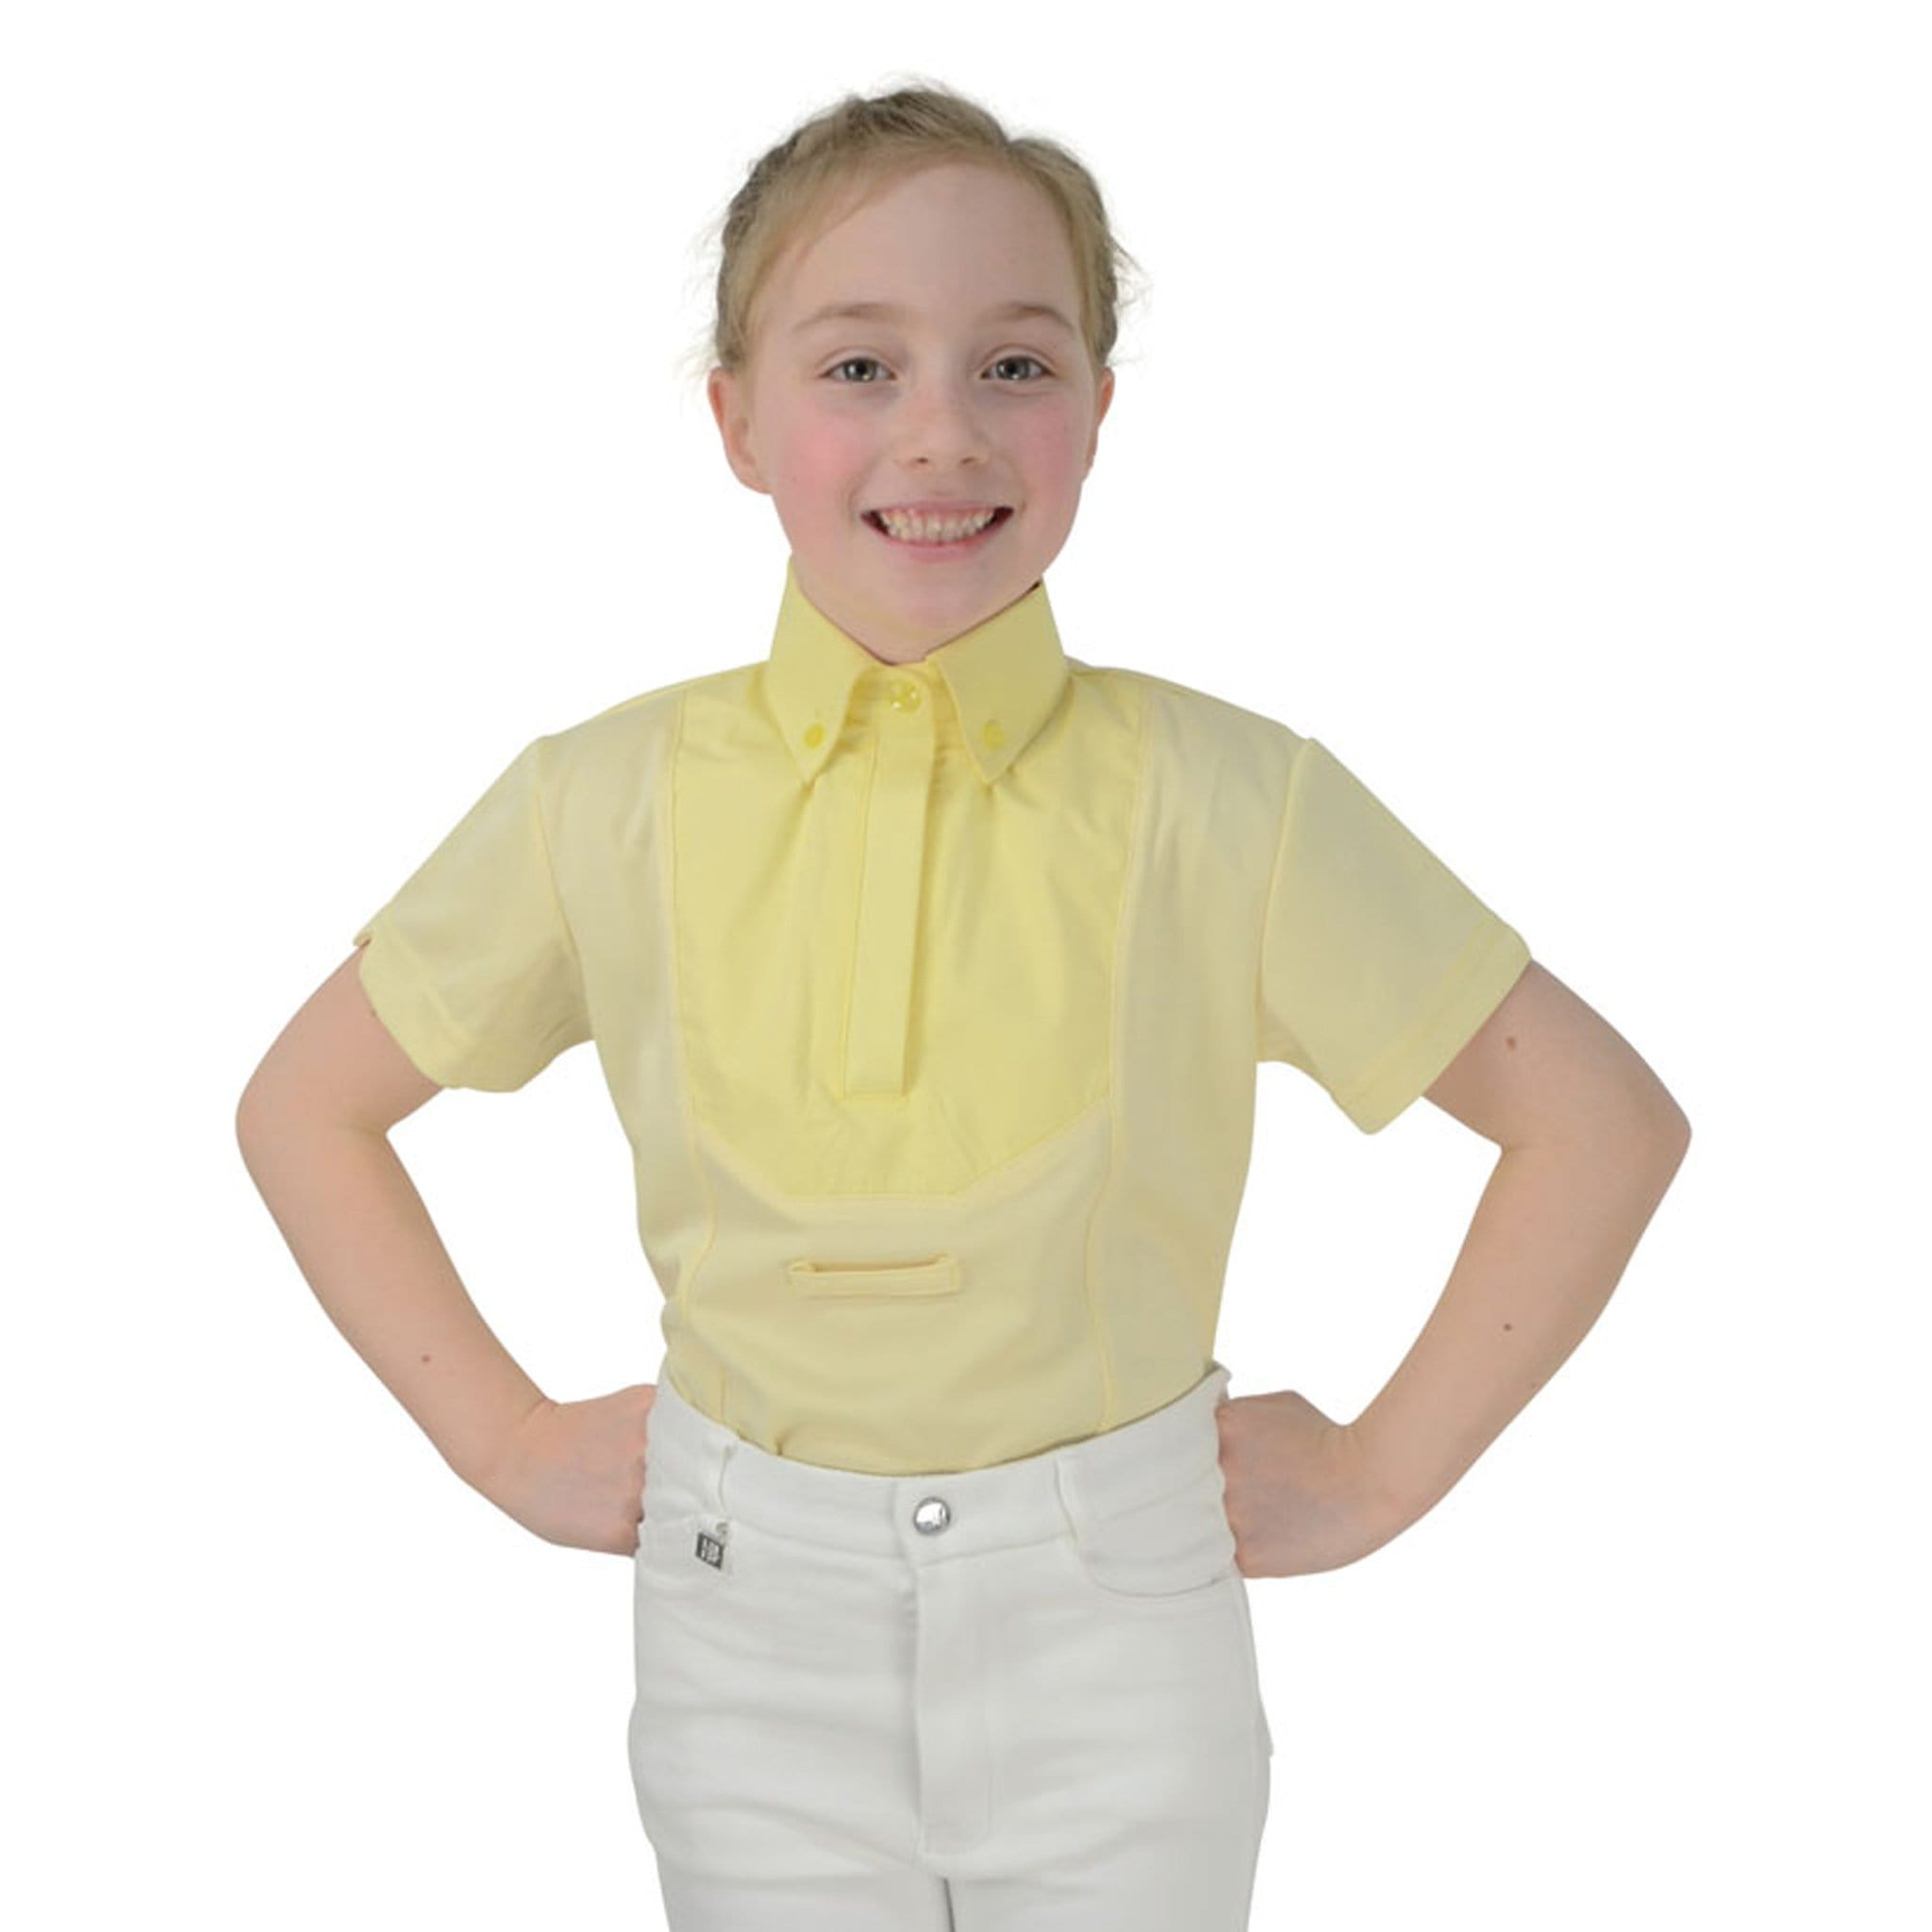 HyFASHION Children's Tilbury Short Sleeved Shirt 17264 Yellow On Child